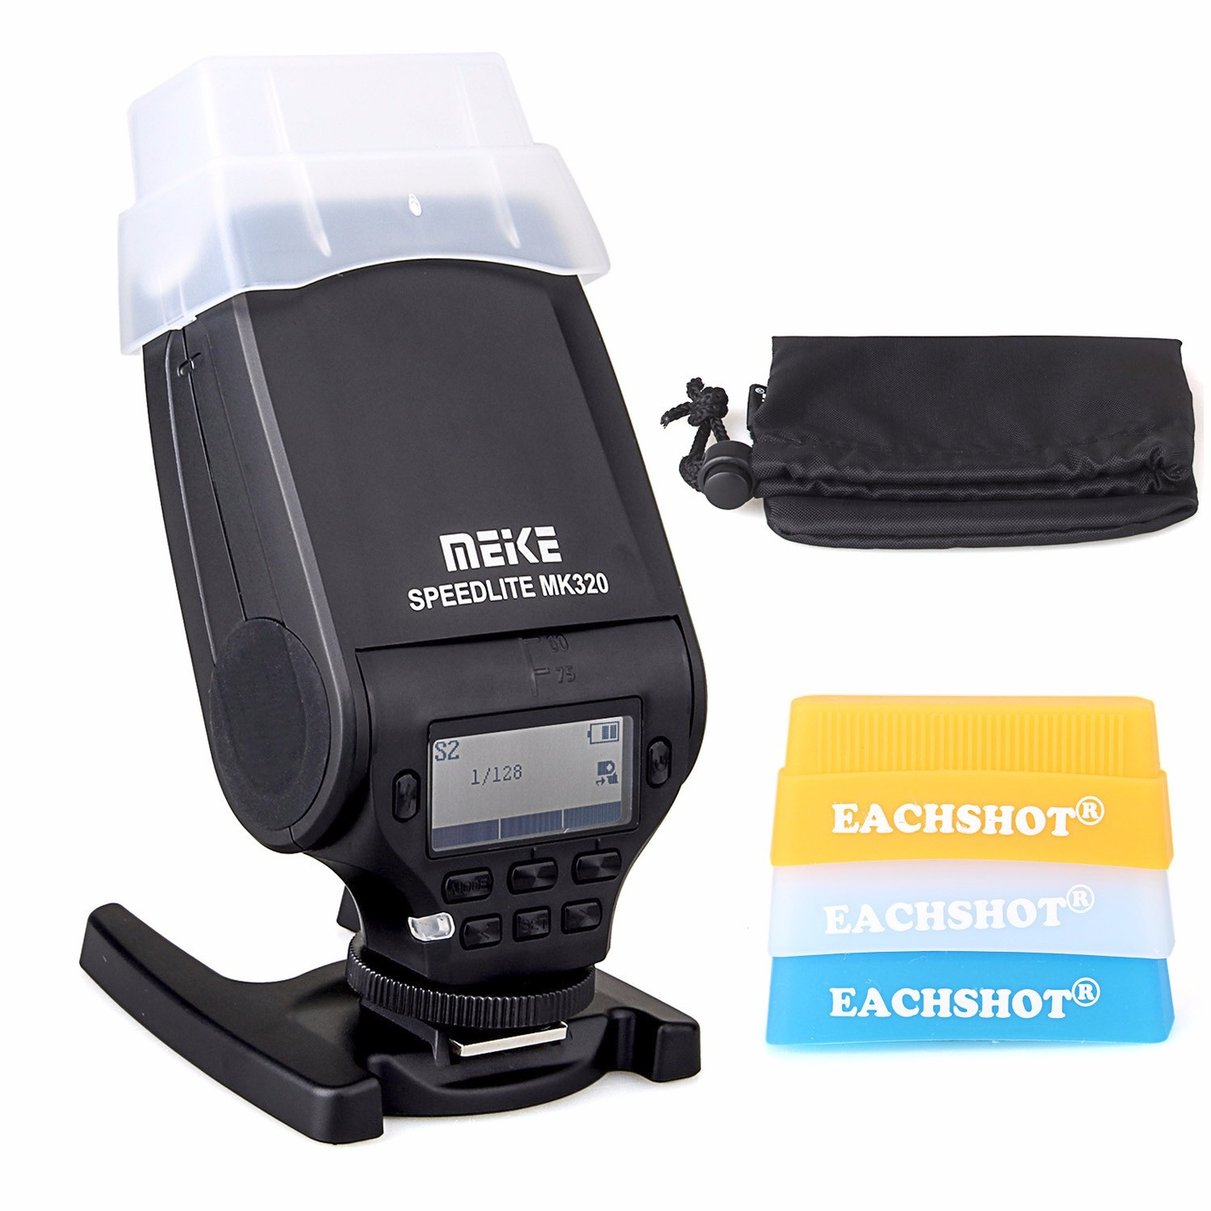 MEIKE MK-320 TTL Master HSS flash Speedlite for Canon EOS M M2 100D 5D II III 6D 7D 60D 70D 600D 7D mark II 700D 1100D T3i T2i mini flash speedlite mk 320c for canon eos 5d mark ii iii 6d 7d ii 60d 70d 600d 700d t3i t2 hot shoe dslr camera